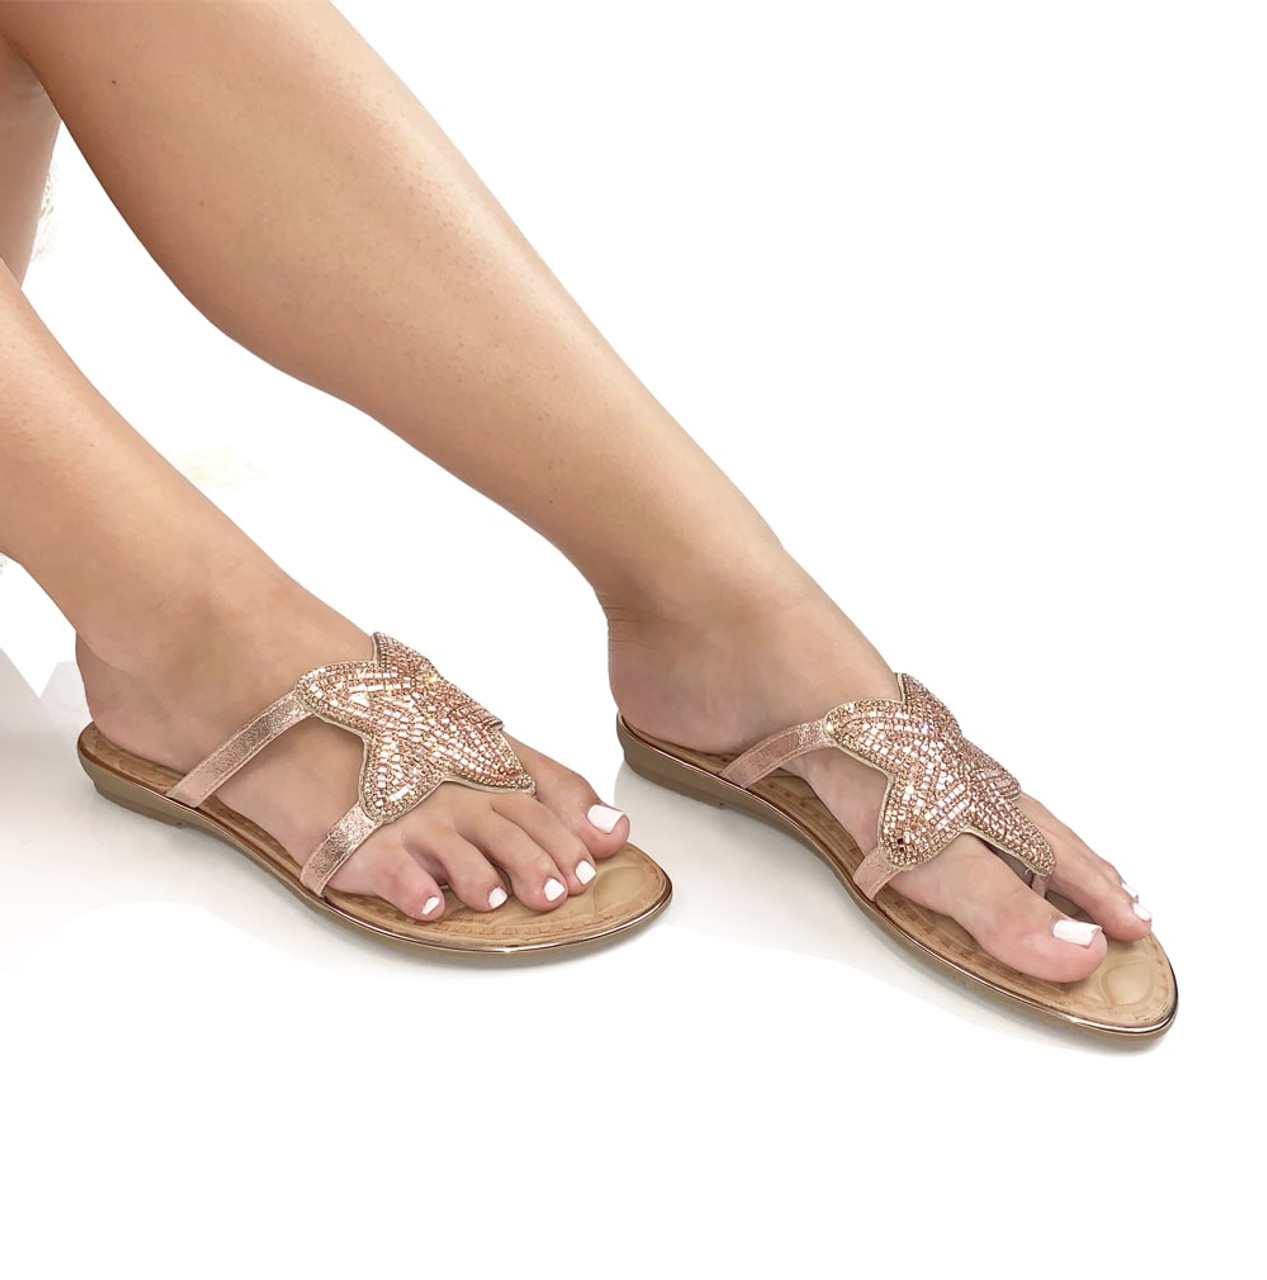 Star Thong Sandals - Rose Gold